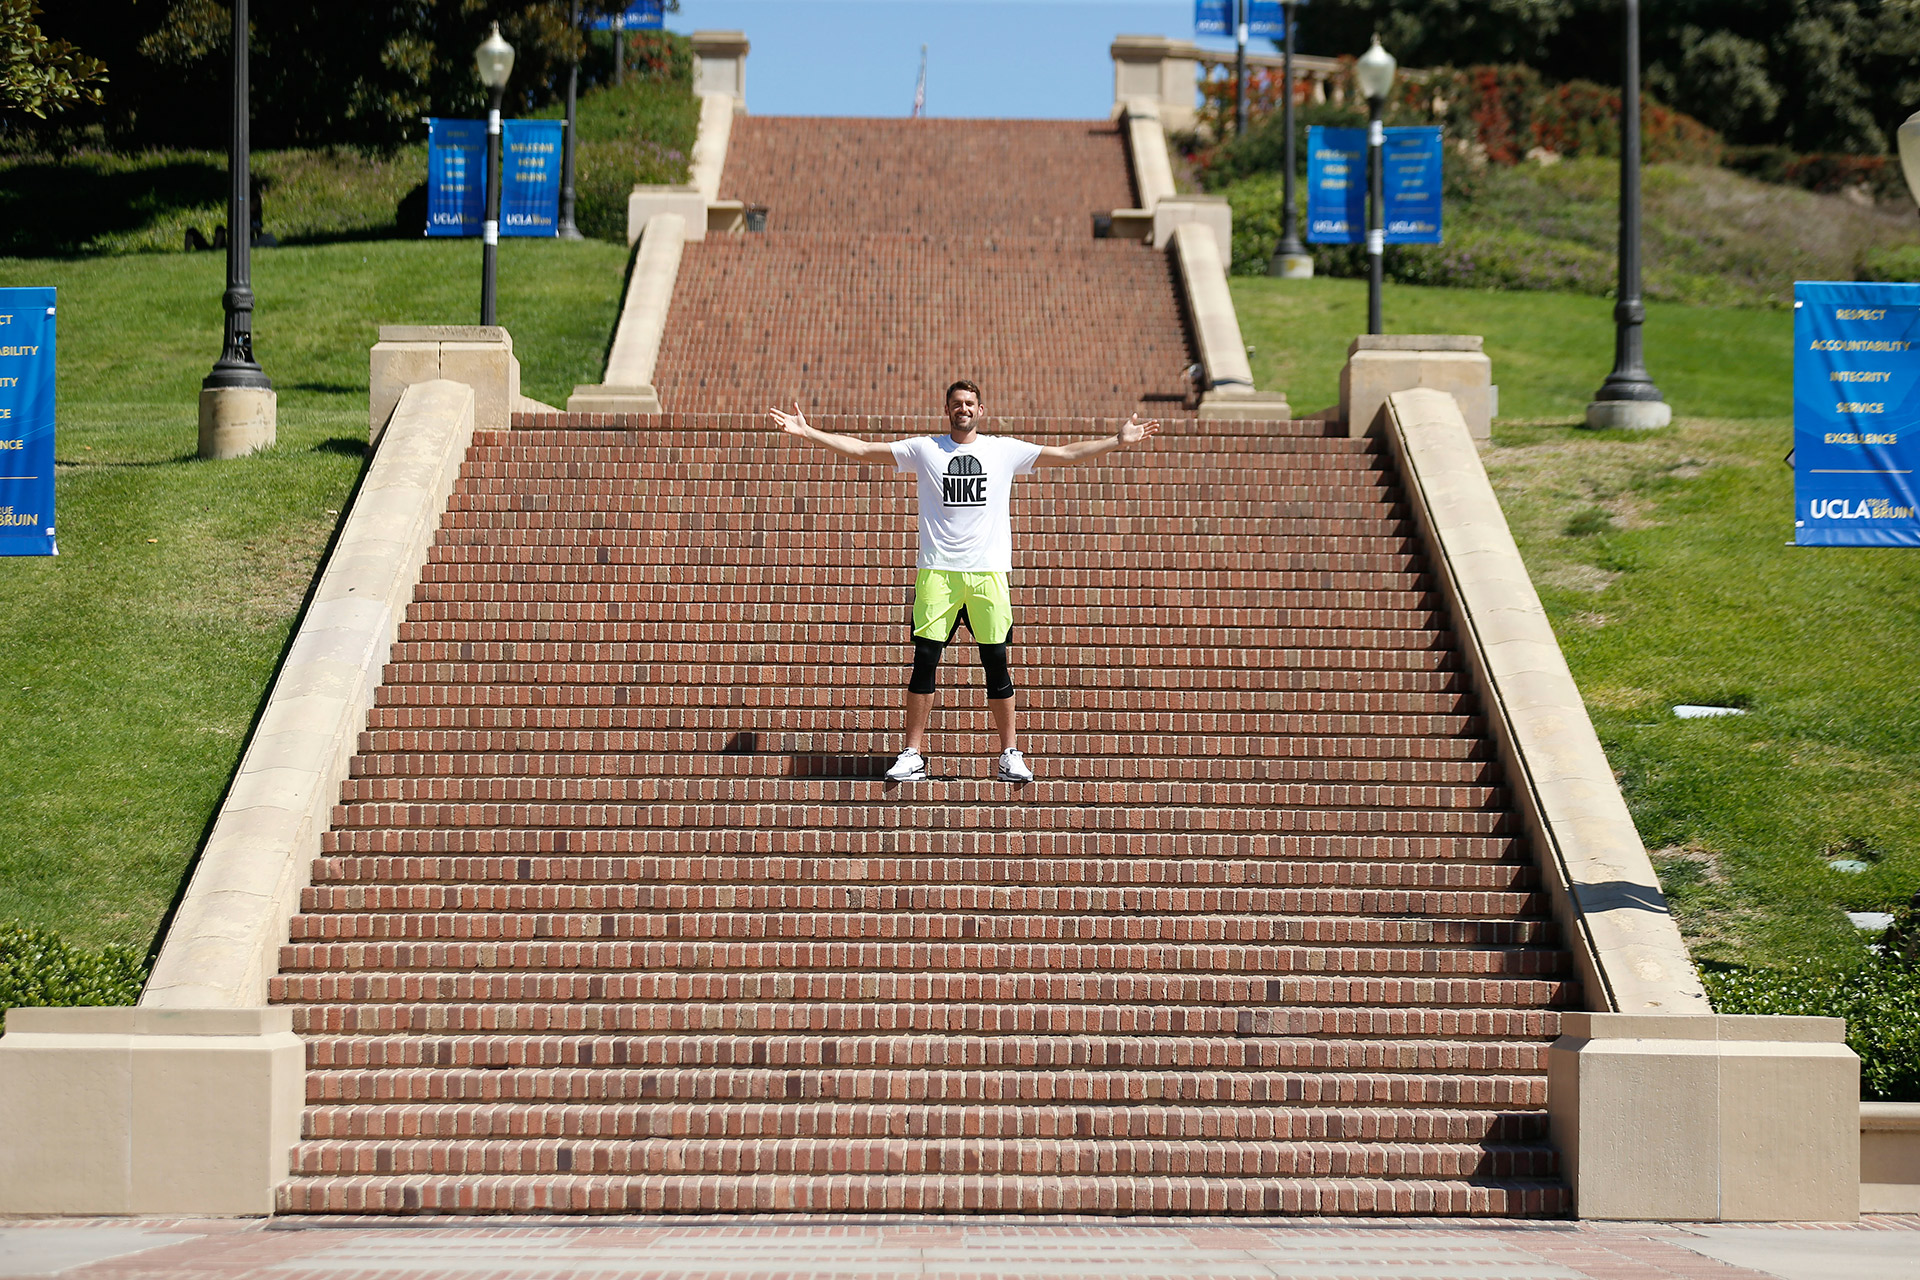 091816_JJ_KLove_UCLA_1416-copy